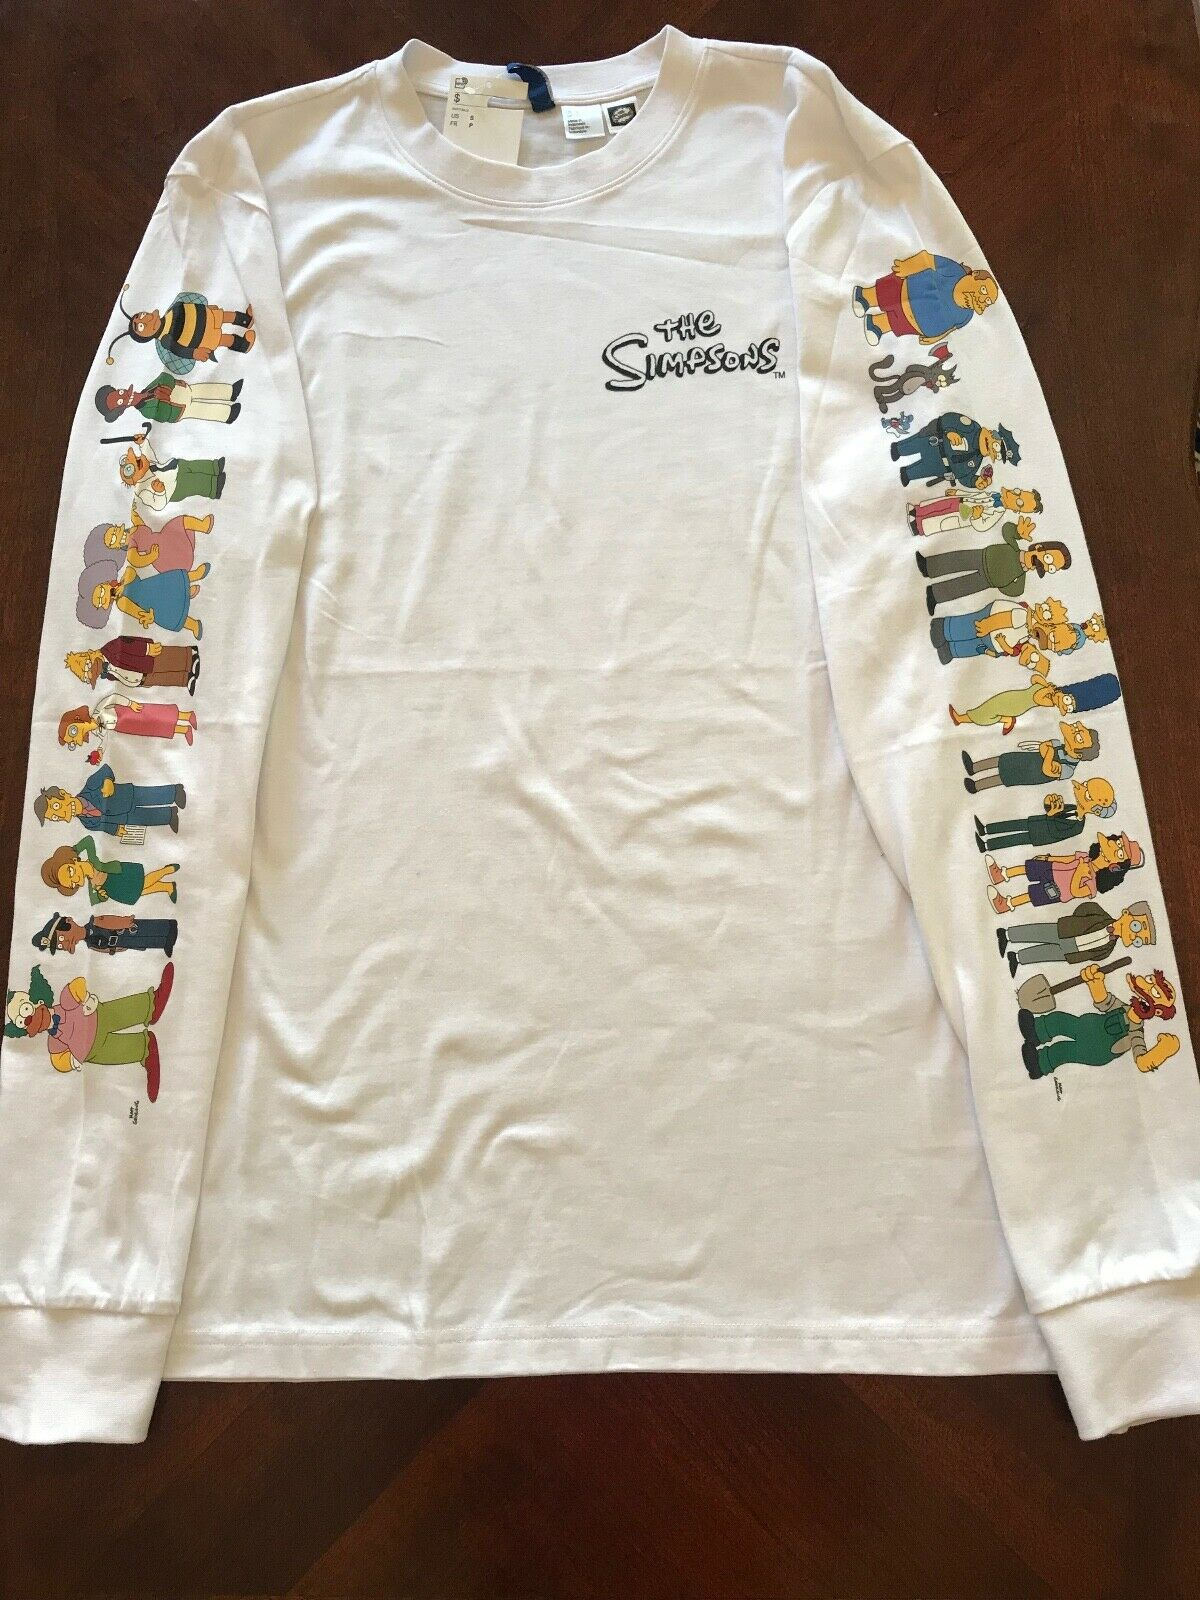 THE SIMPSONS Long Sleeve H&M T-Shirts NEW S,M,L,XL CHARACTERS ON BOTH SLEEVES